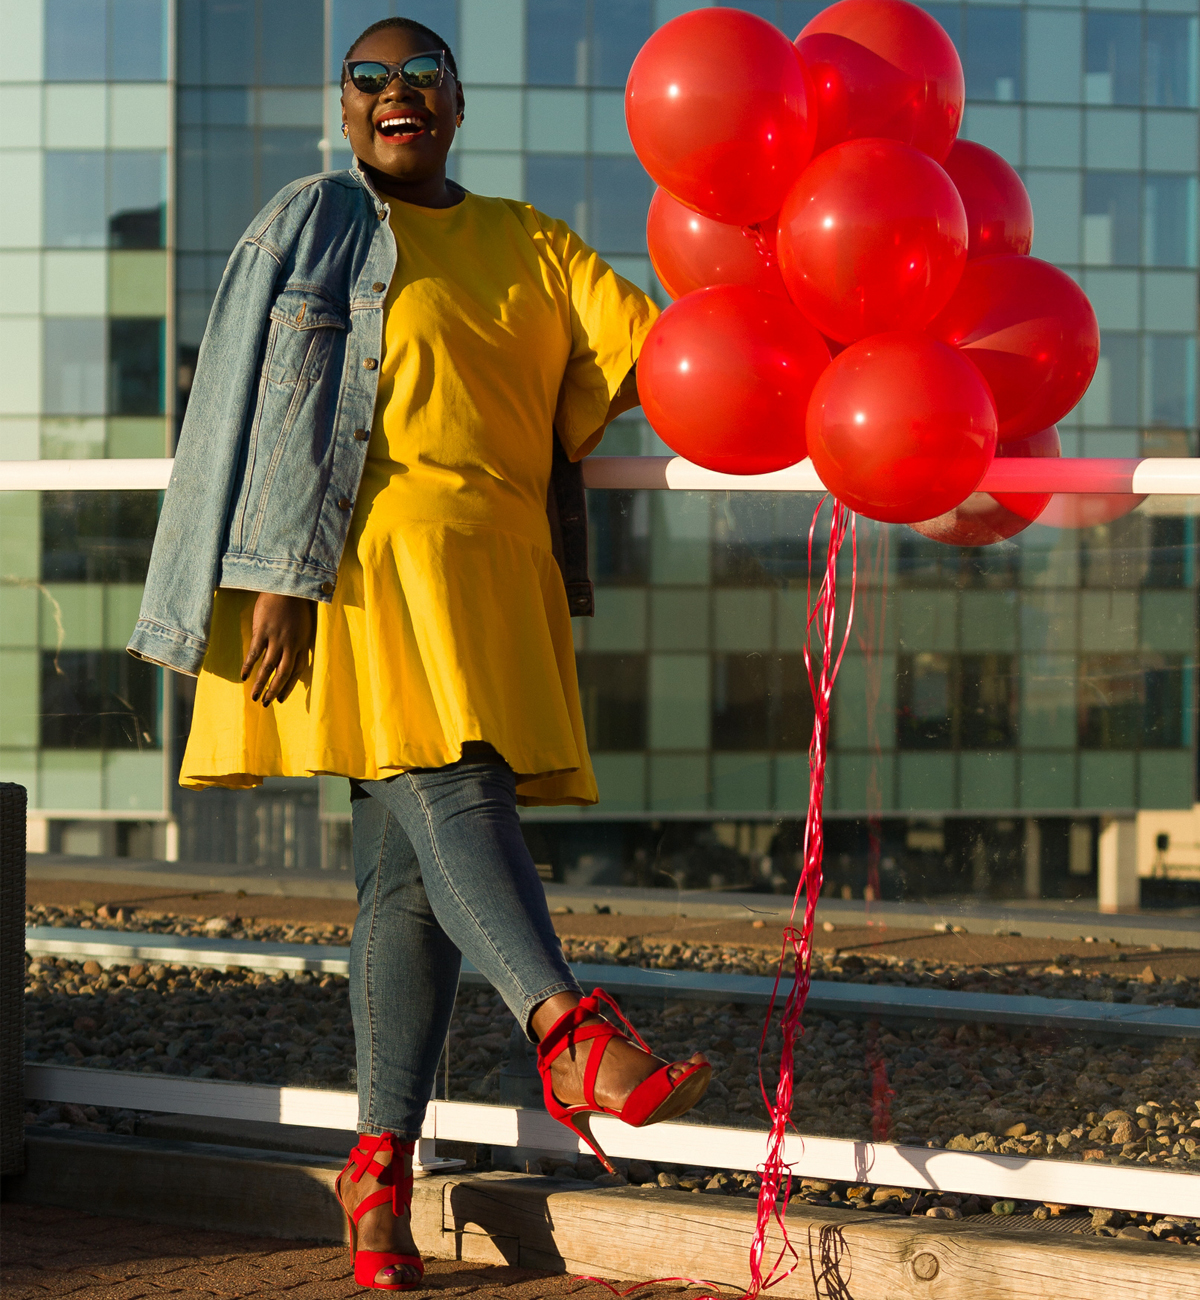 celebrating life, yellow dress, red shoes, balloon shoot pete steeper 03